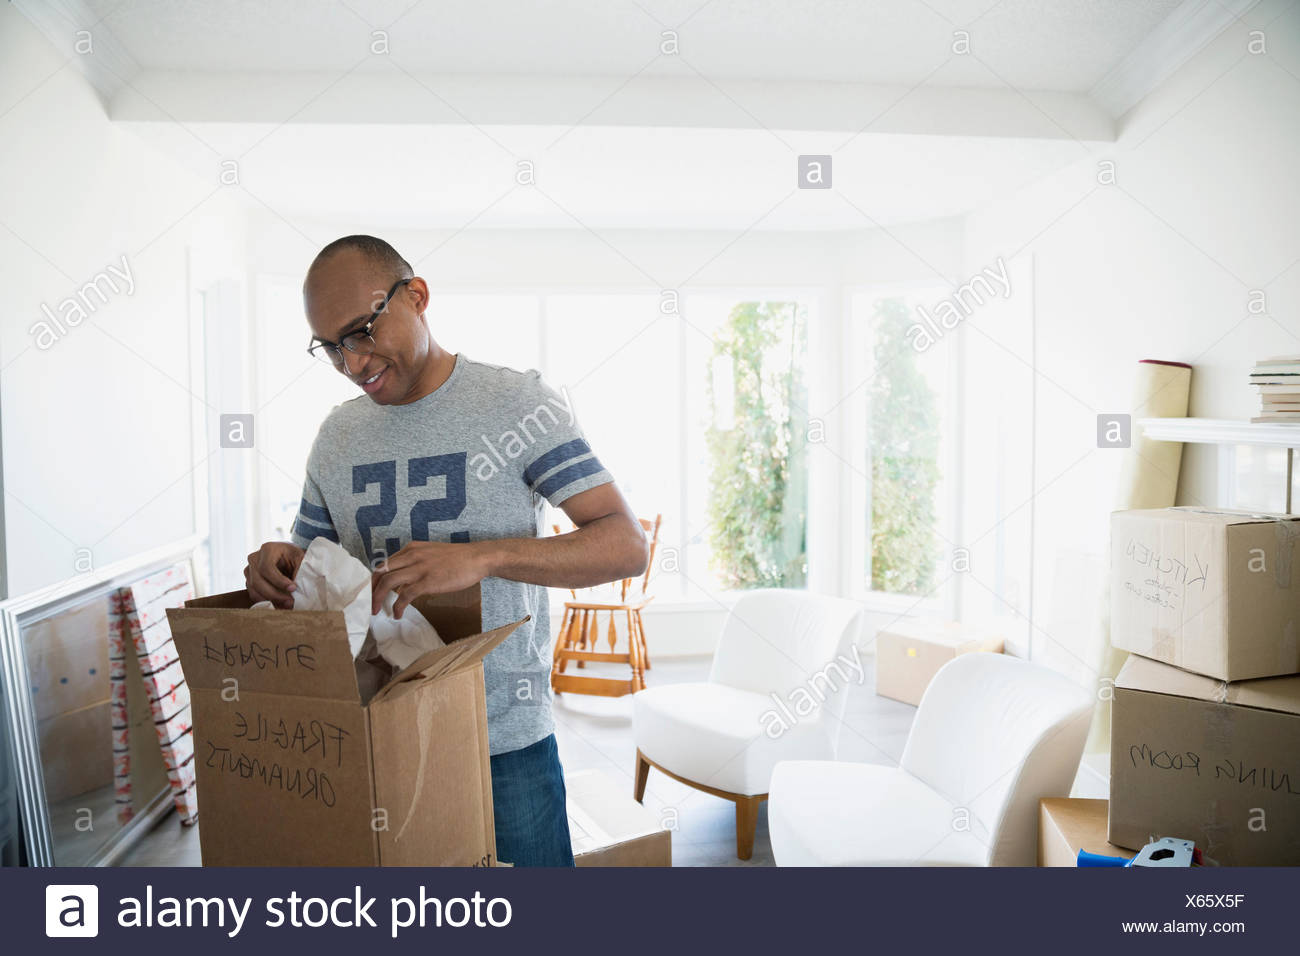 Man packing moving box in living room - Stock Image